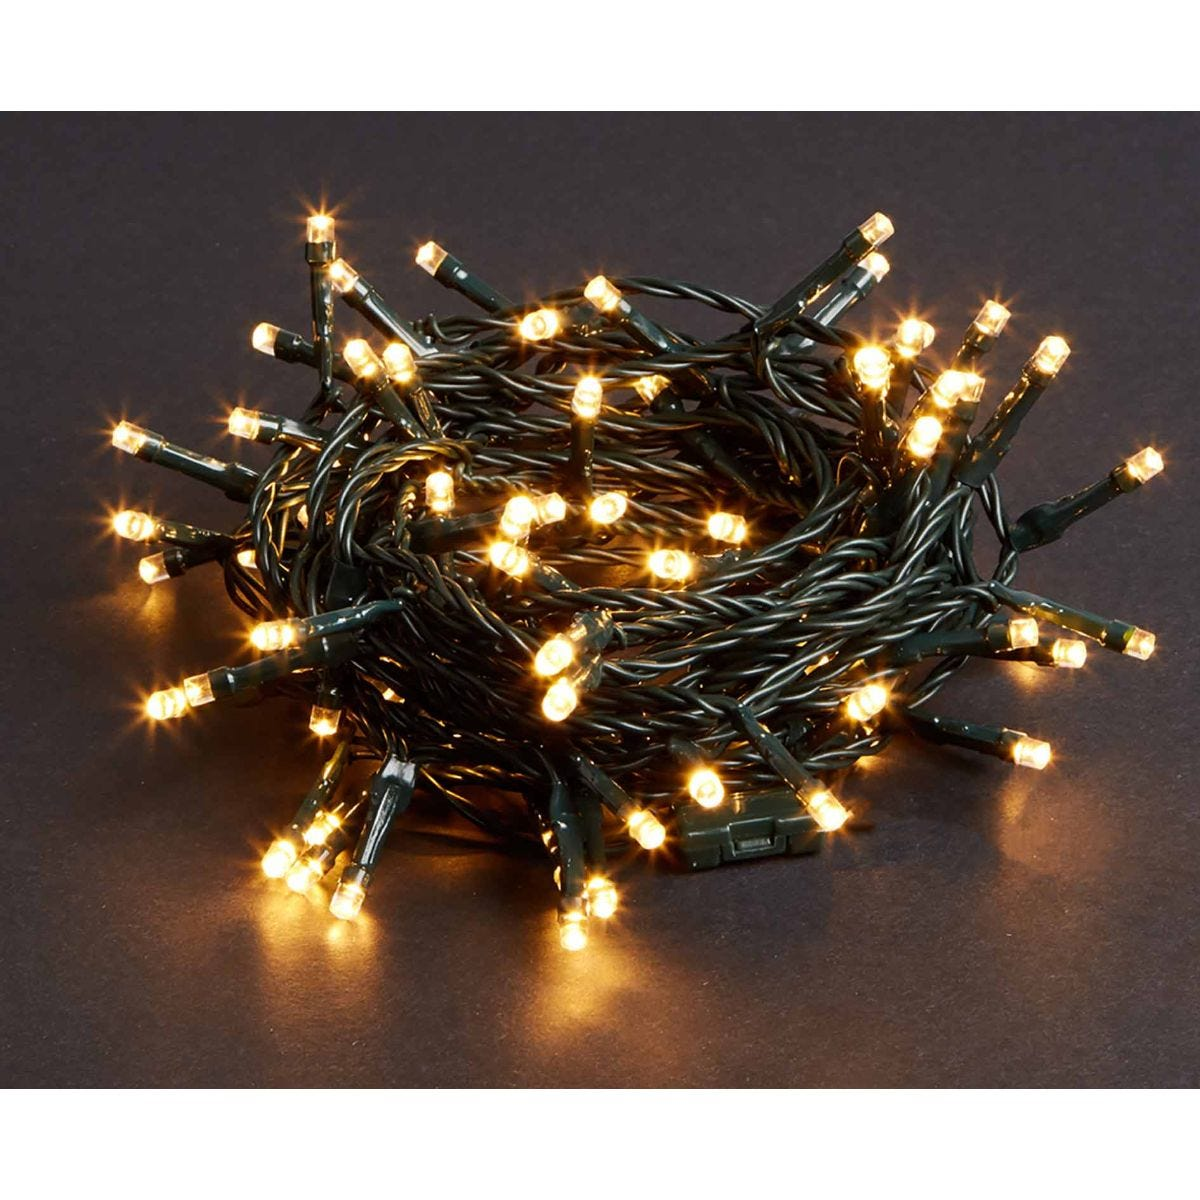 Image of 200 LED String Lights Mains Operated Warm White, White